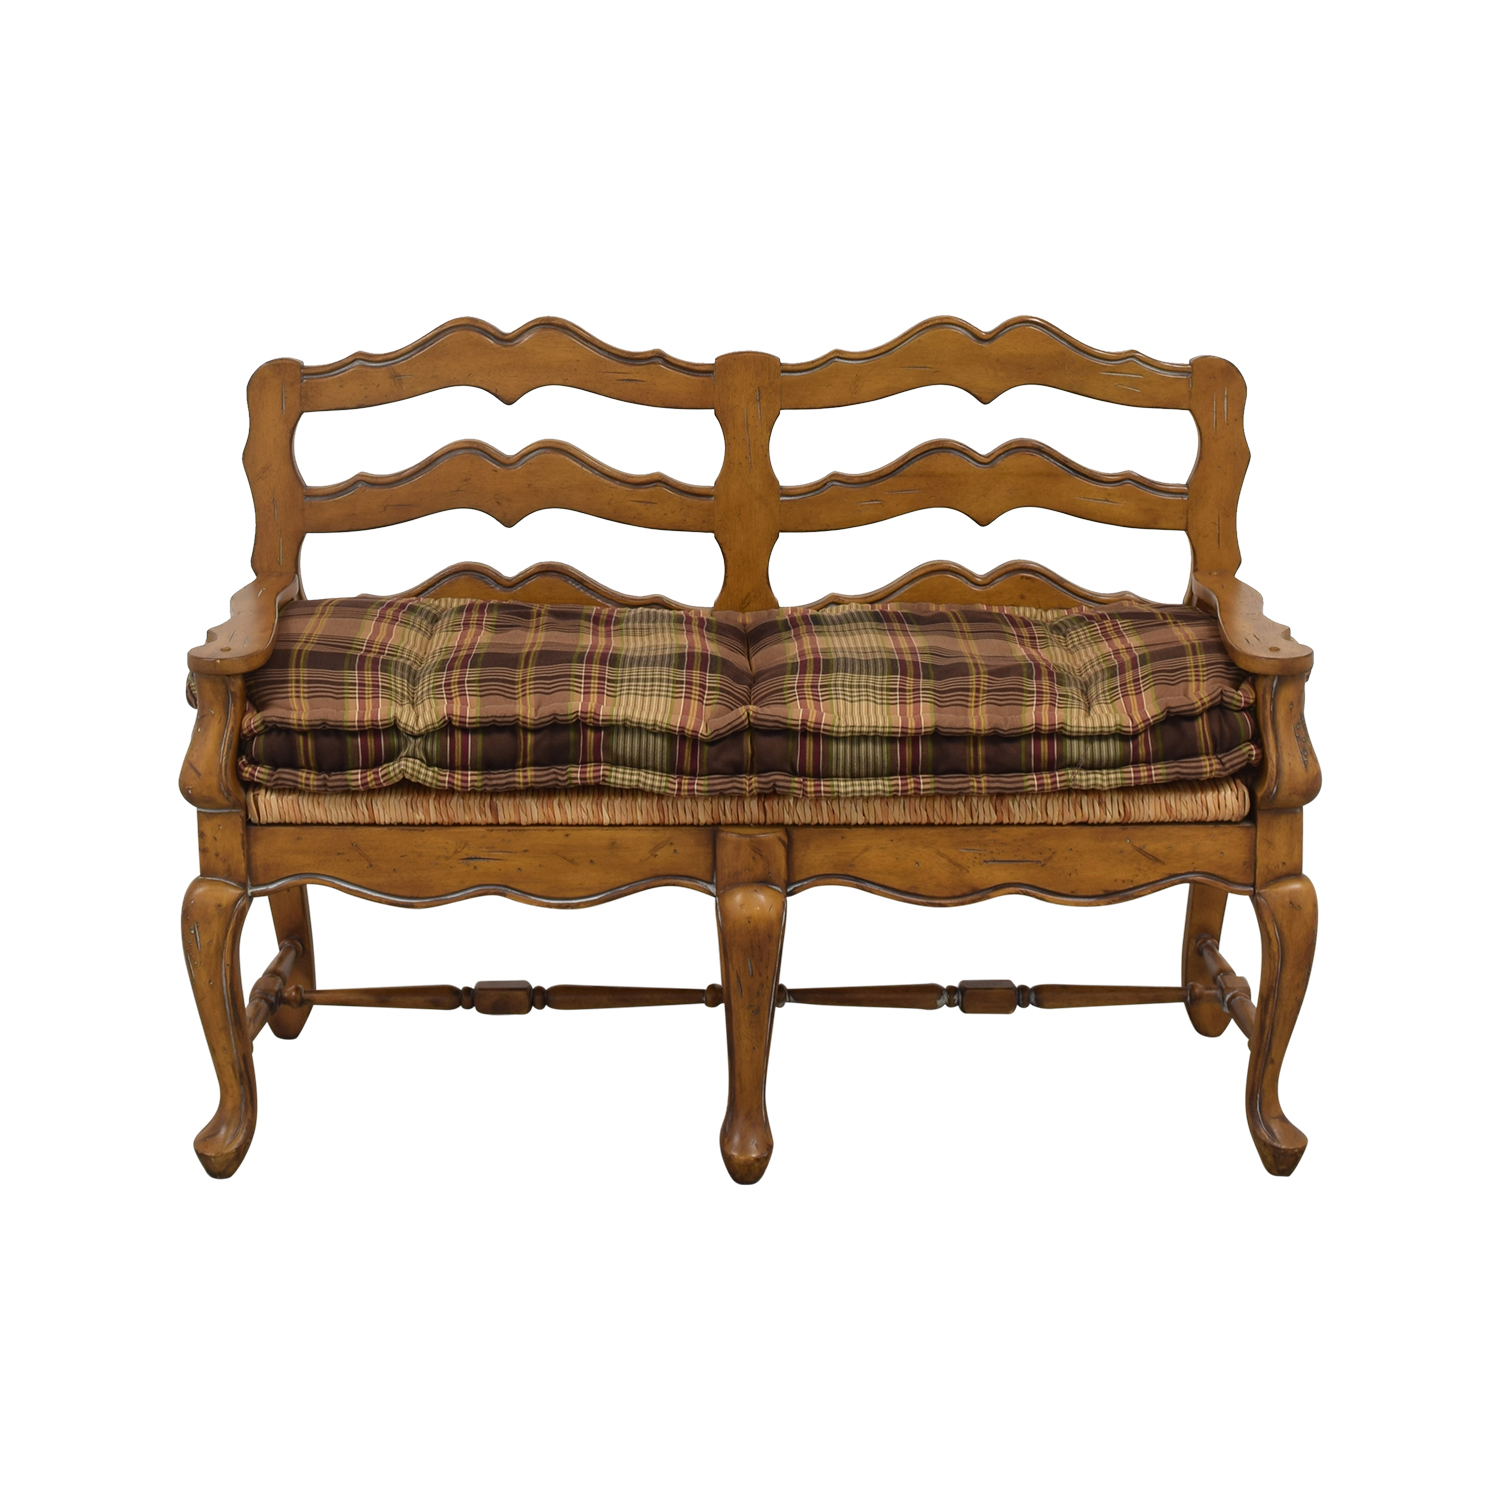 Vintage Plaid Cushion Bench used